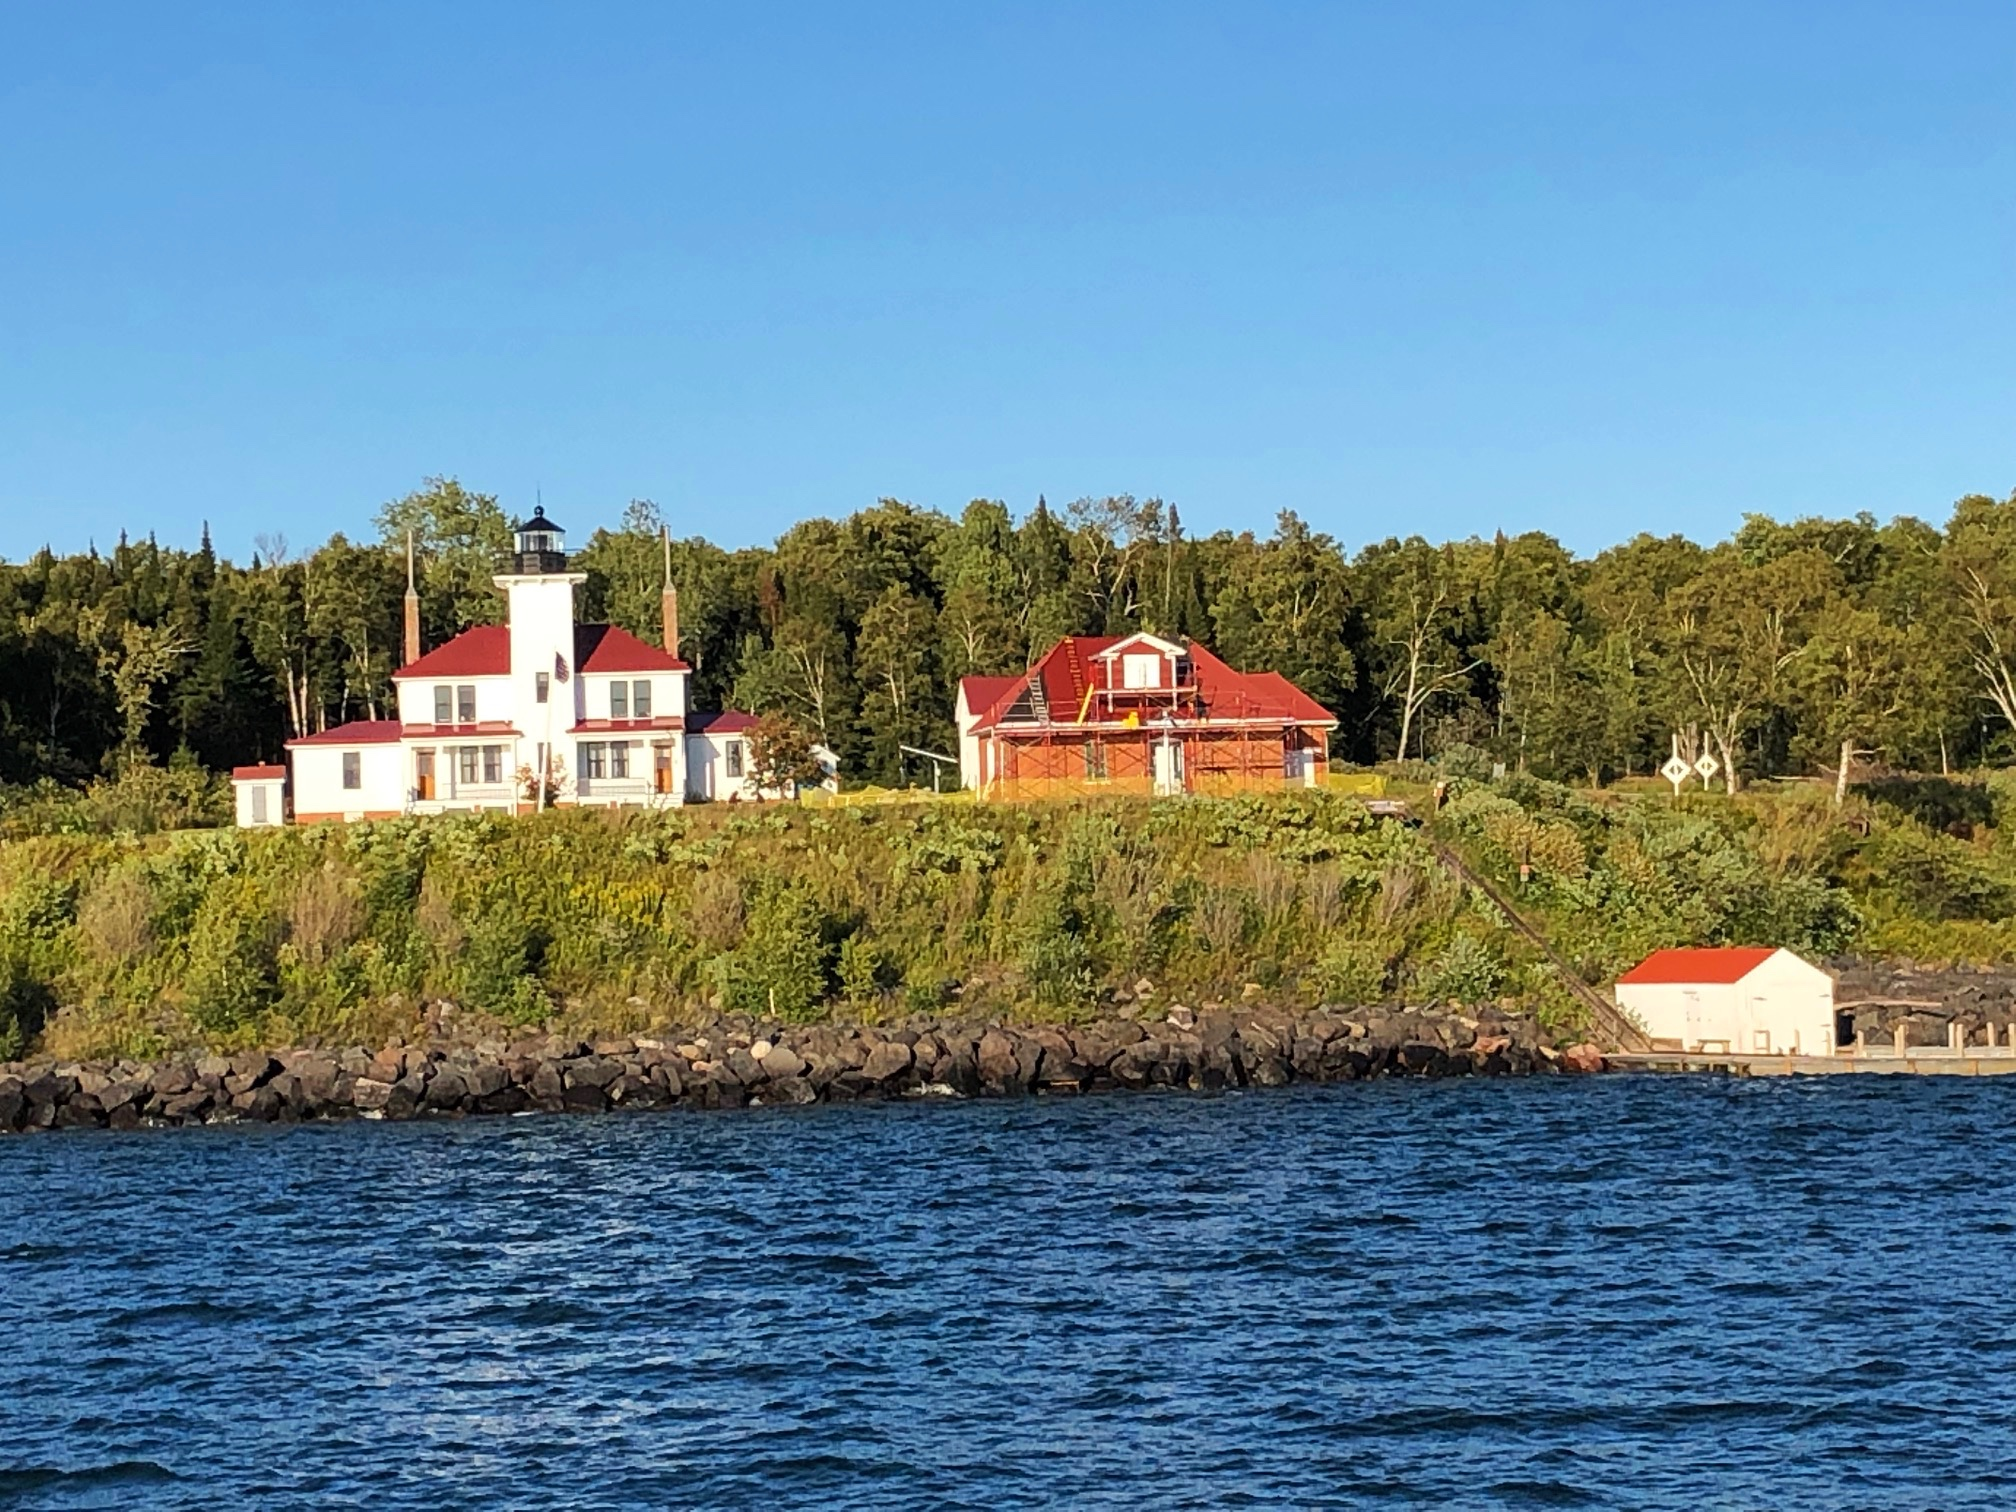 Another of the lighthouses on the Apostle Islands.